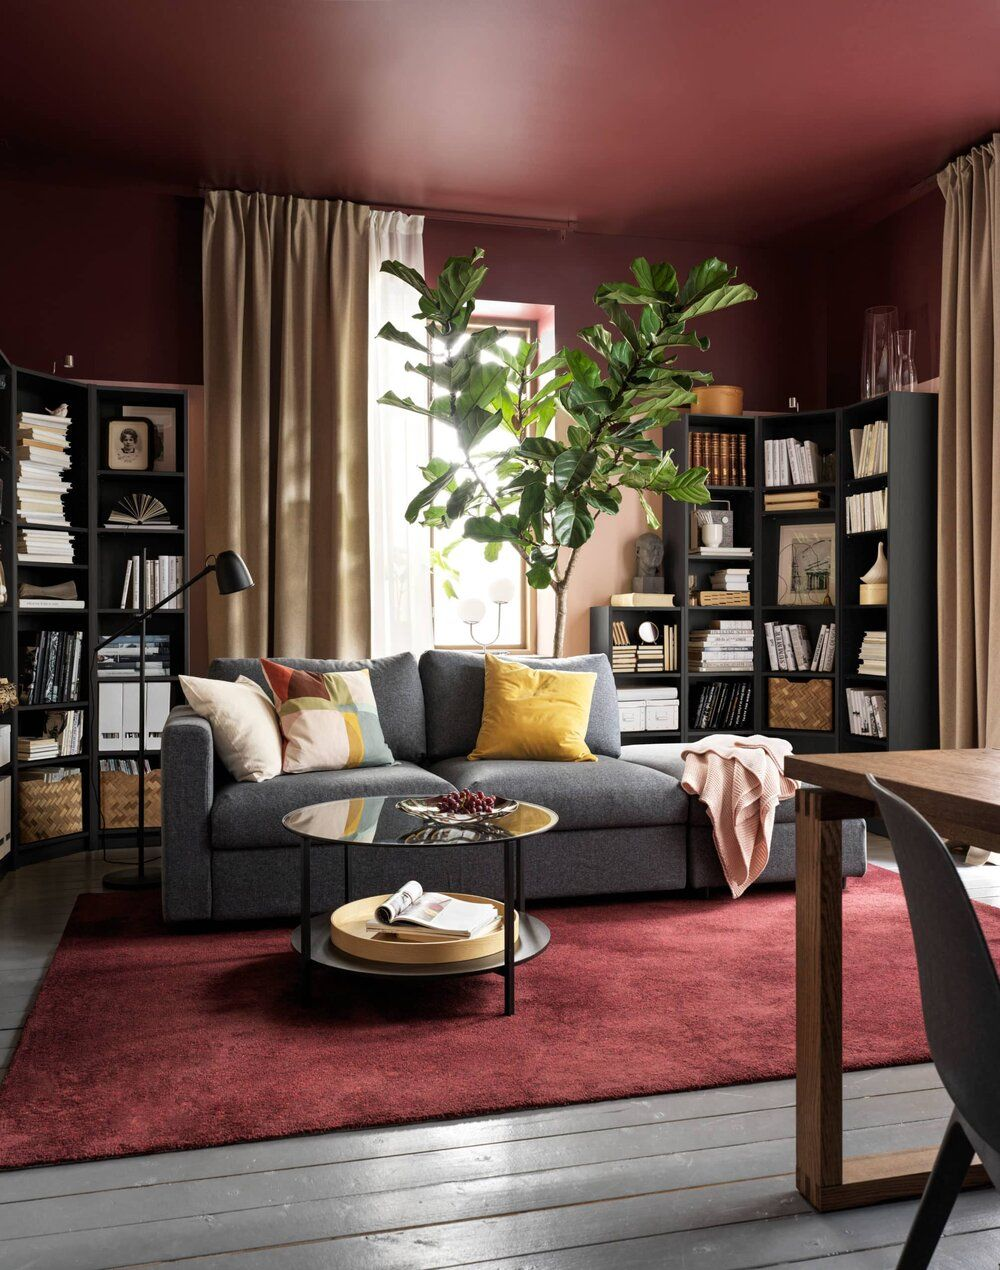 Ikea Catalog 2021 A Handbook For A Better Everyday Life At Home The Nordroom Dream House Rooms Ikea Catalog Farm House Living Room